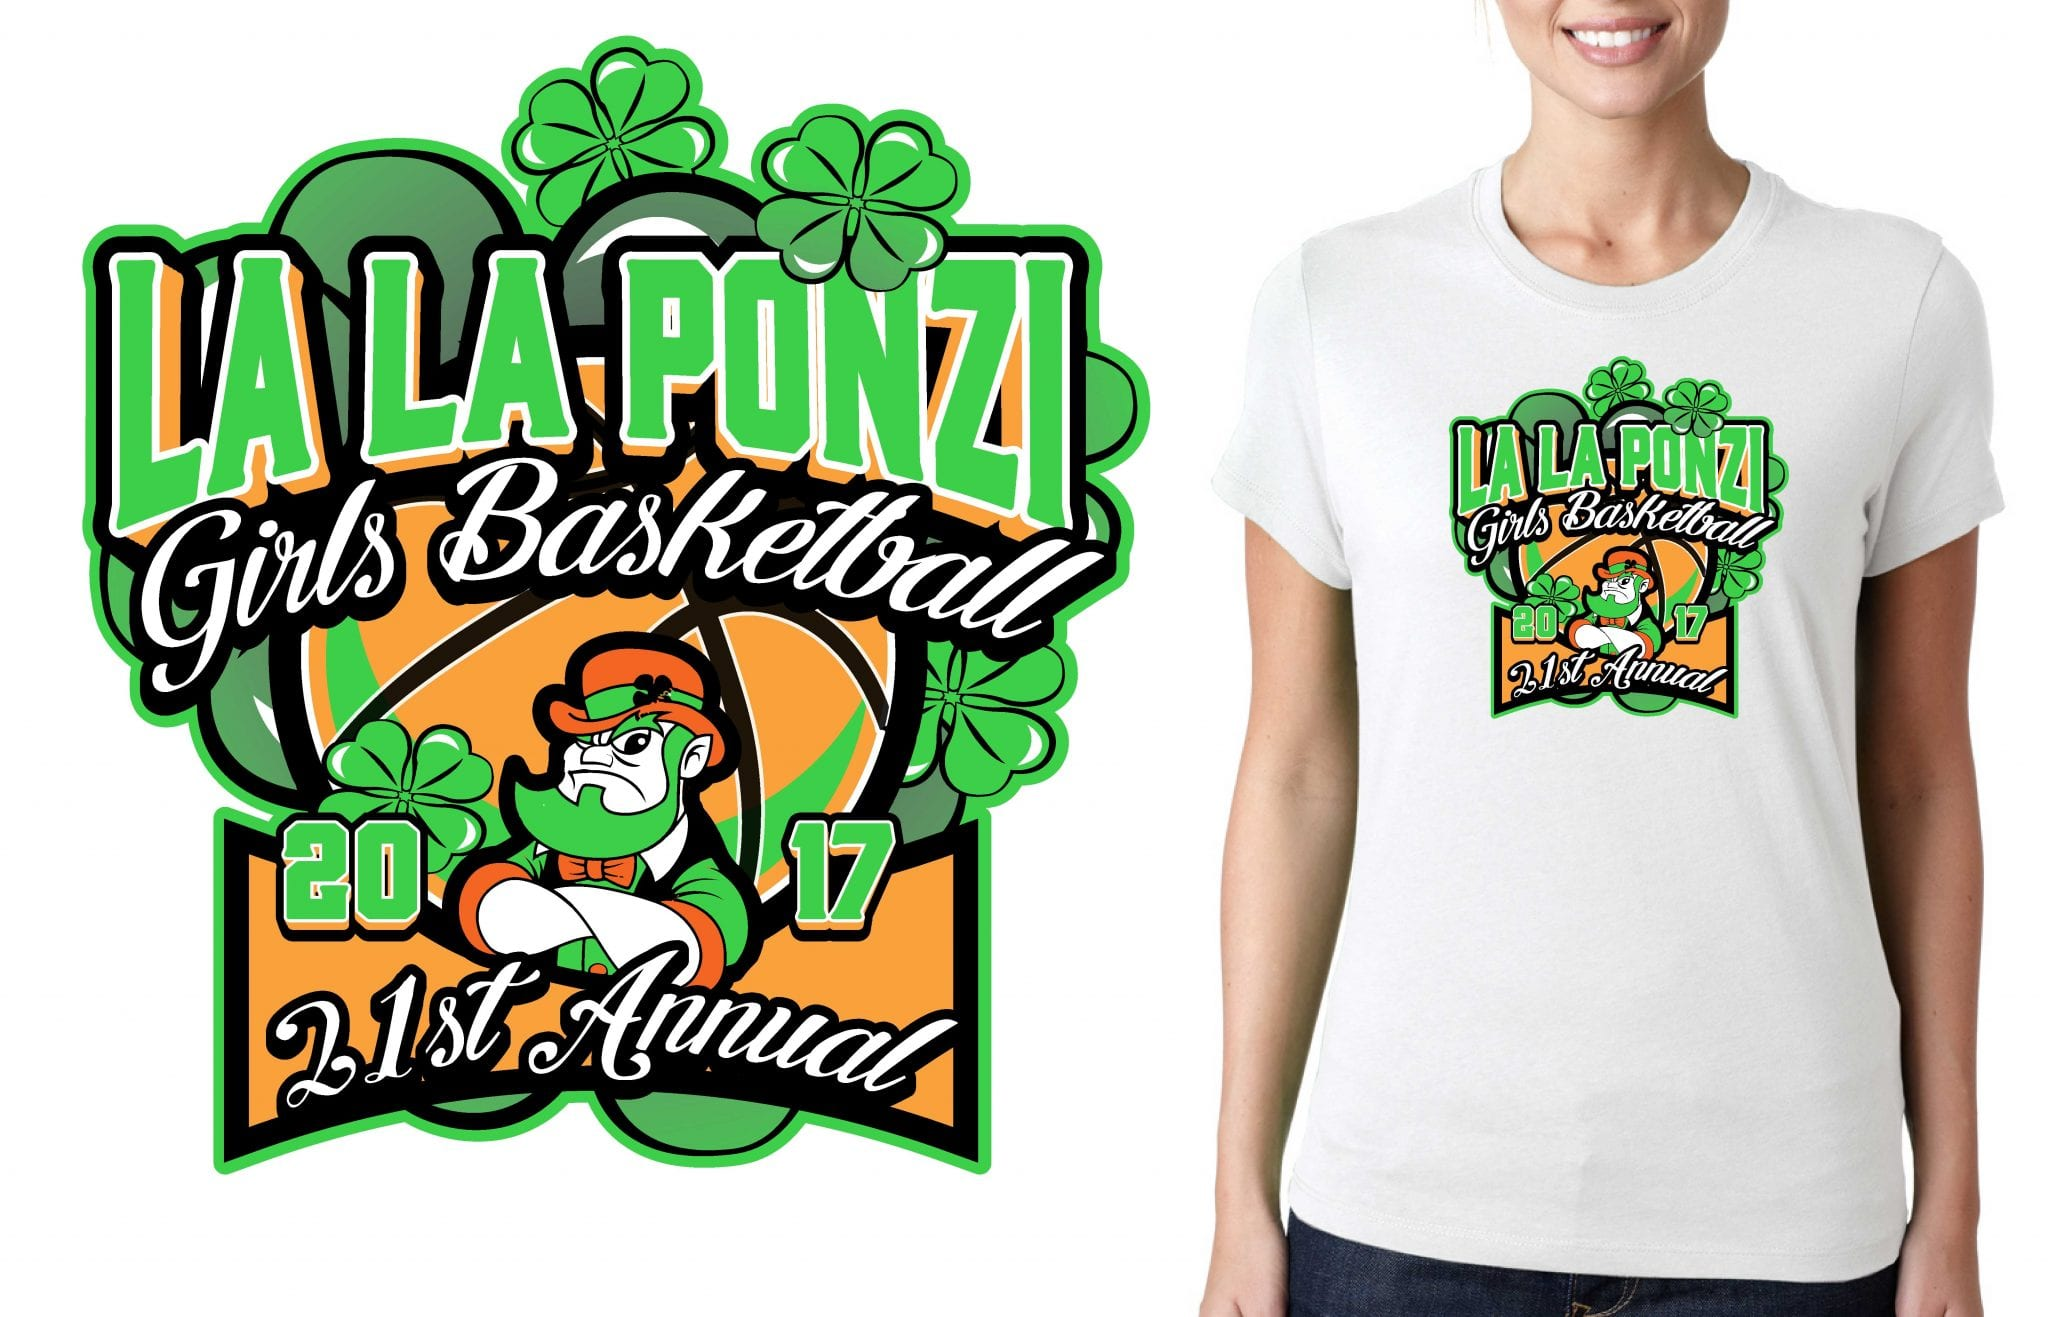 BASKETBALL TSHIRT LOGO for 2017-21st-Annual-La-La-Ponzi-Tournament BY UrArtStudio